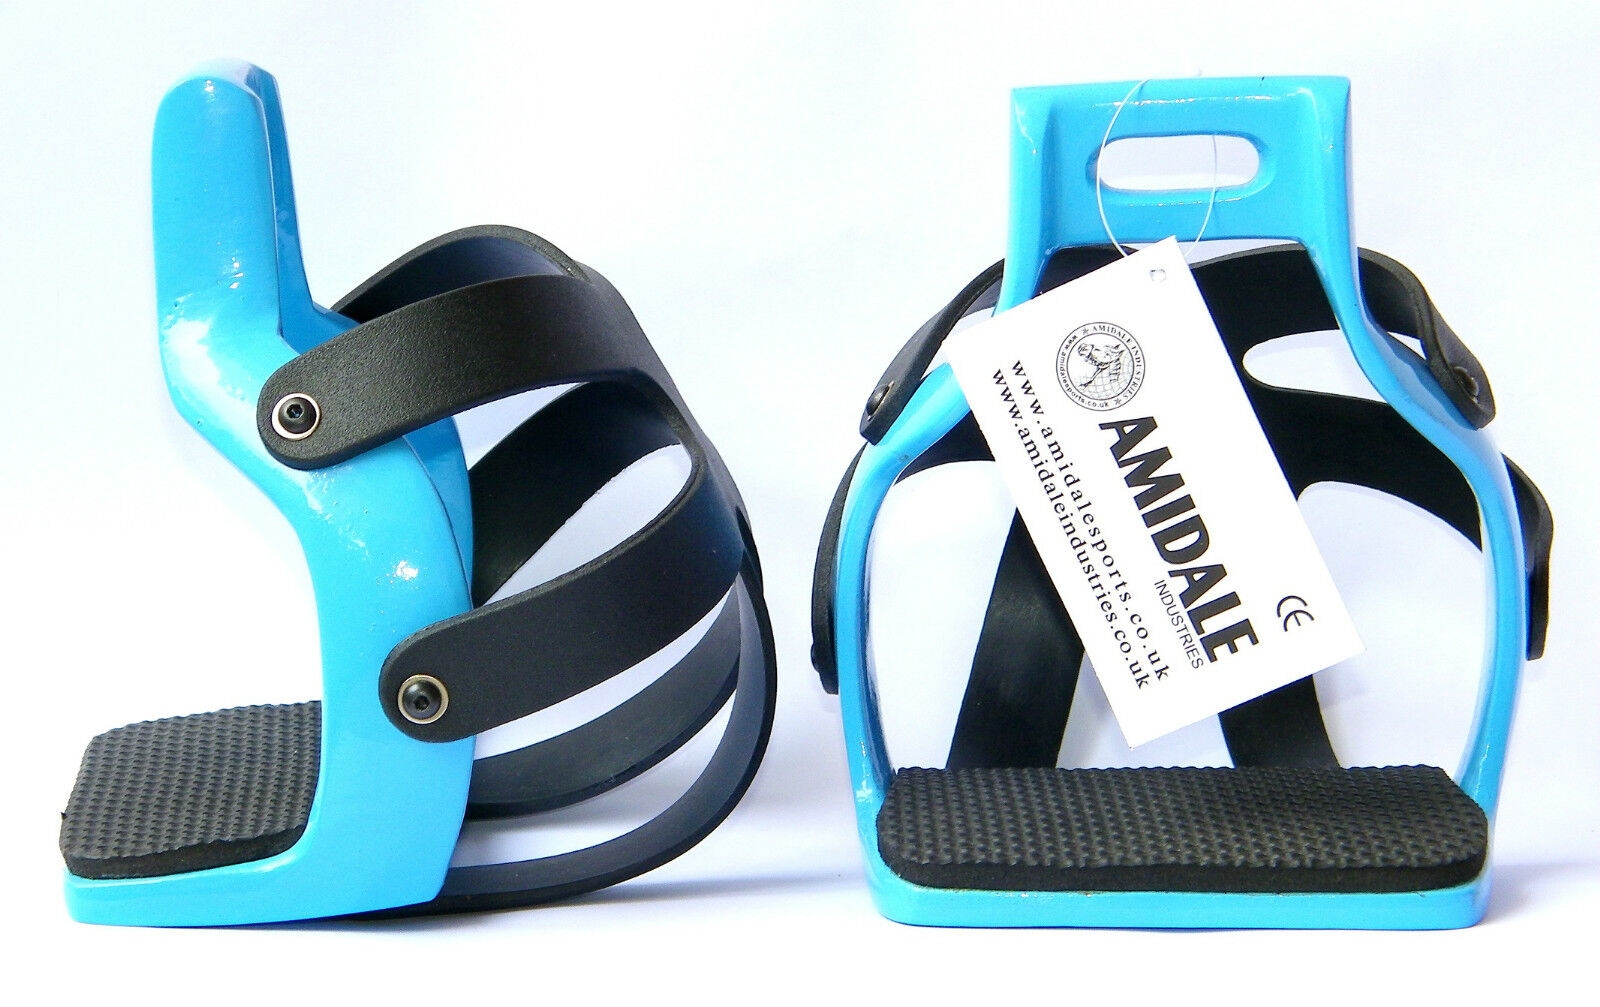 AMIDALE ALUMINIUM ENDURANCE FLEX RIDE CAGED SAFETY HORSE STIRRUPS SKY blue COLOR